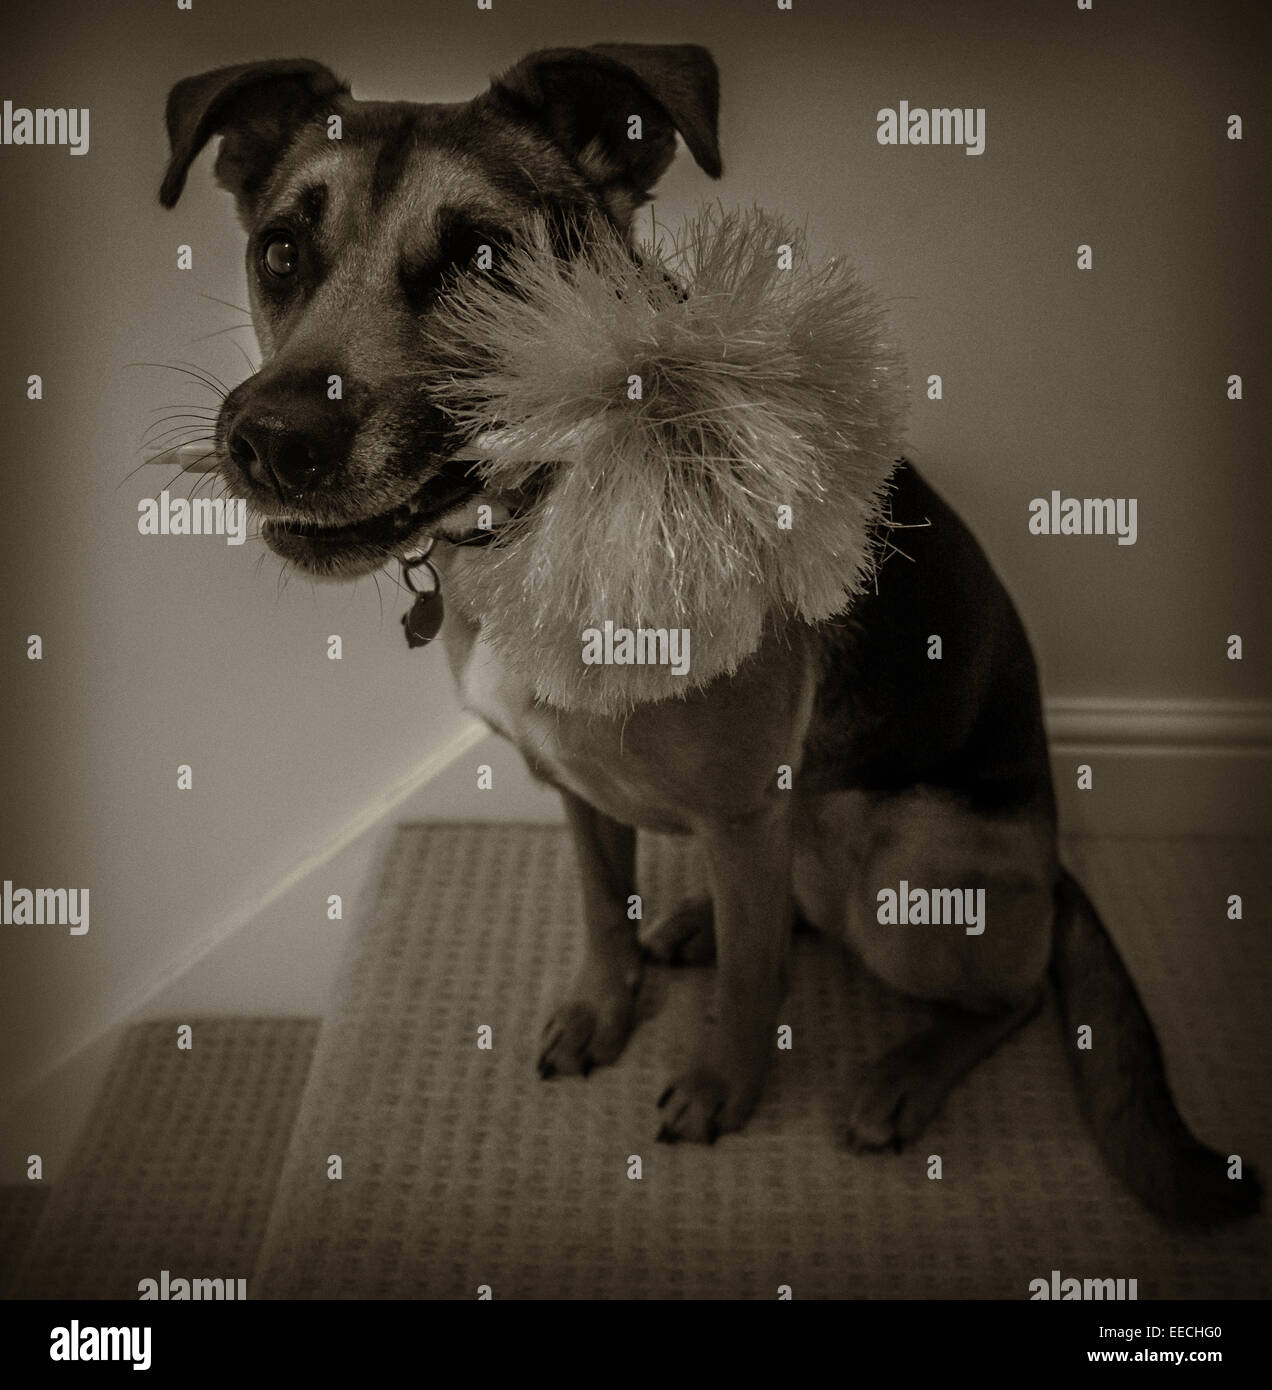 Dog helping to dust the dog hairs - Stock Image